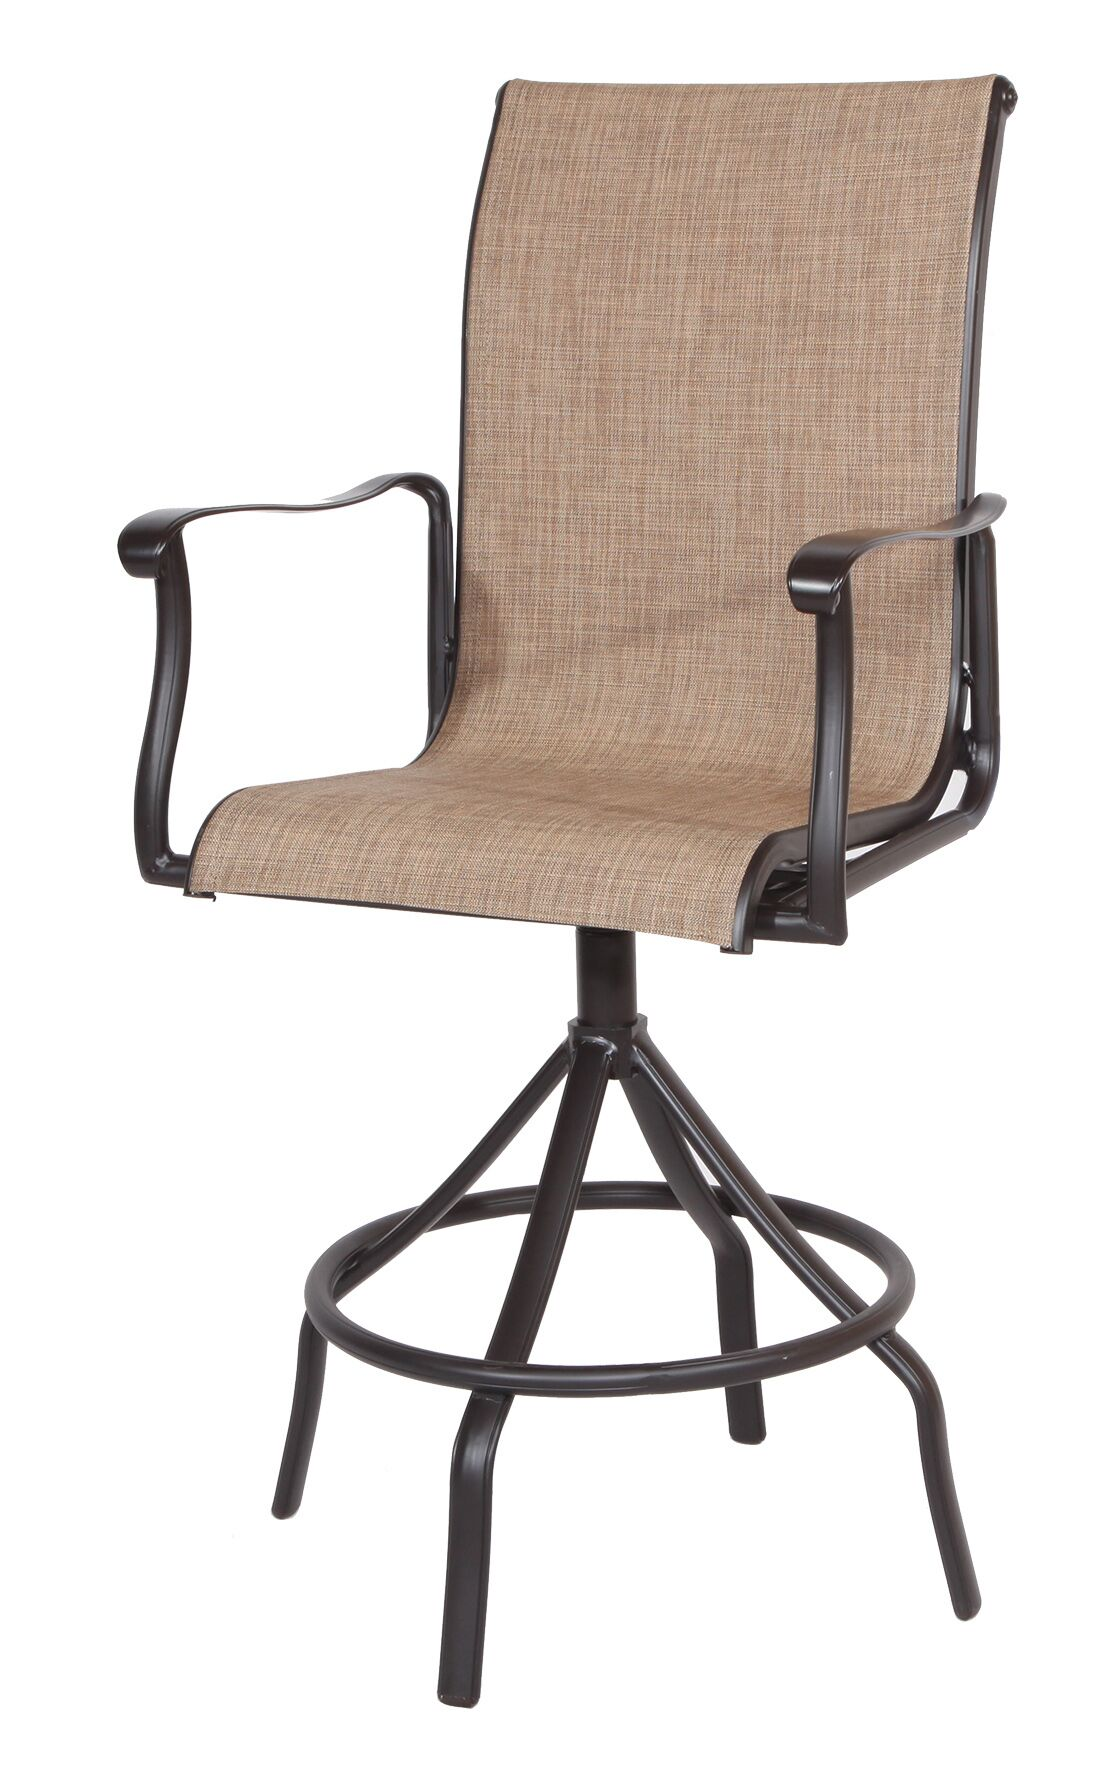 Lawn Chairs Lowes Bar Chairs Sold At Lowe S Stores Recalled Due To Fall Hazard Made